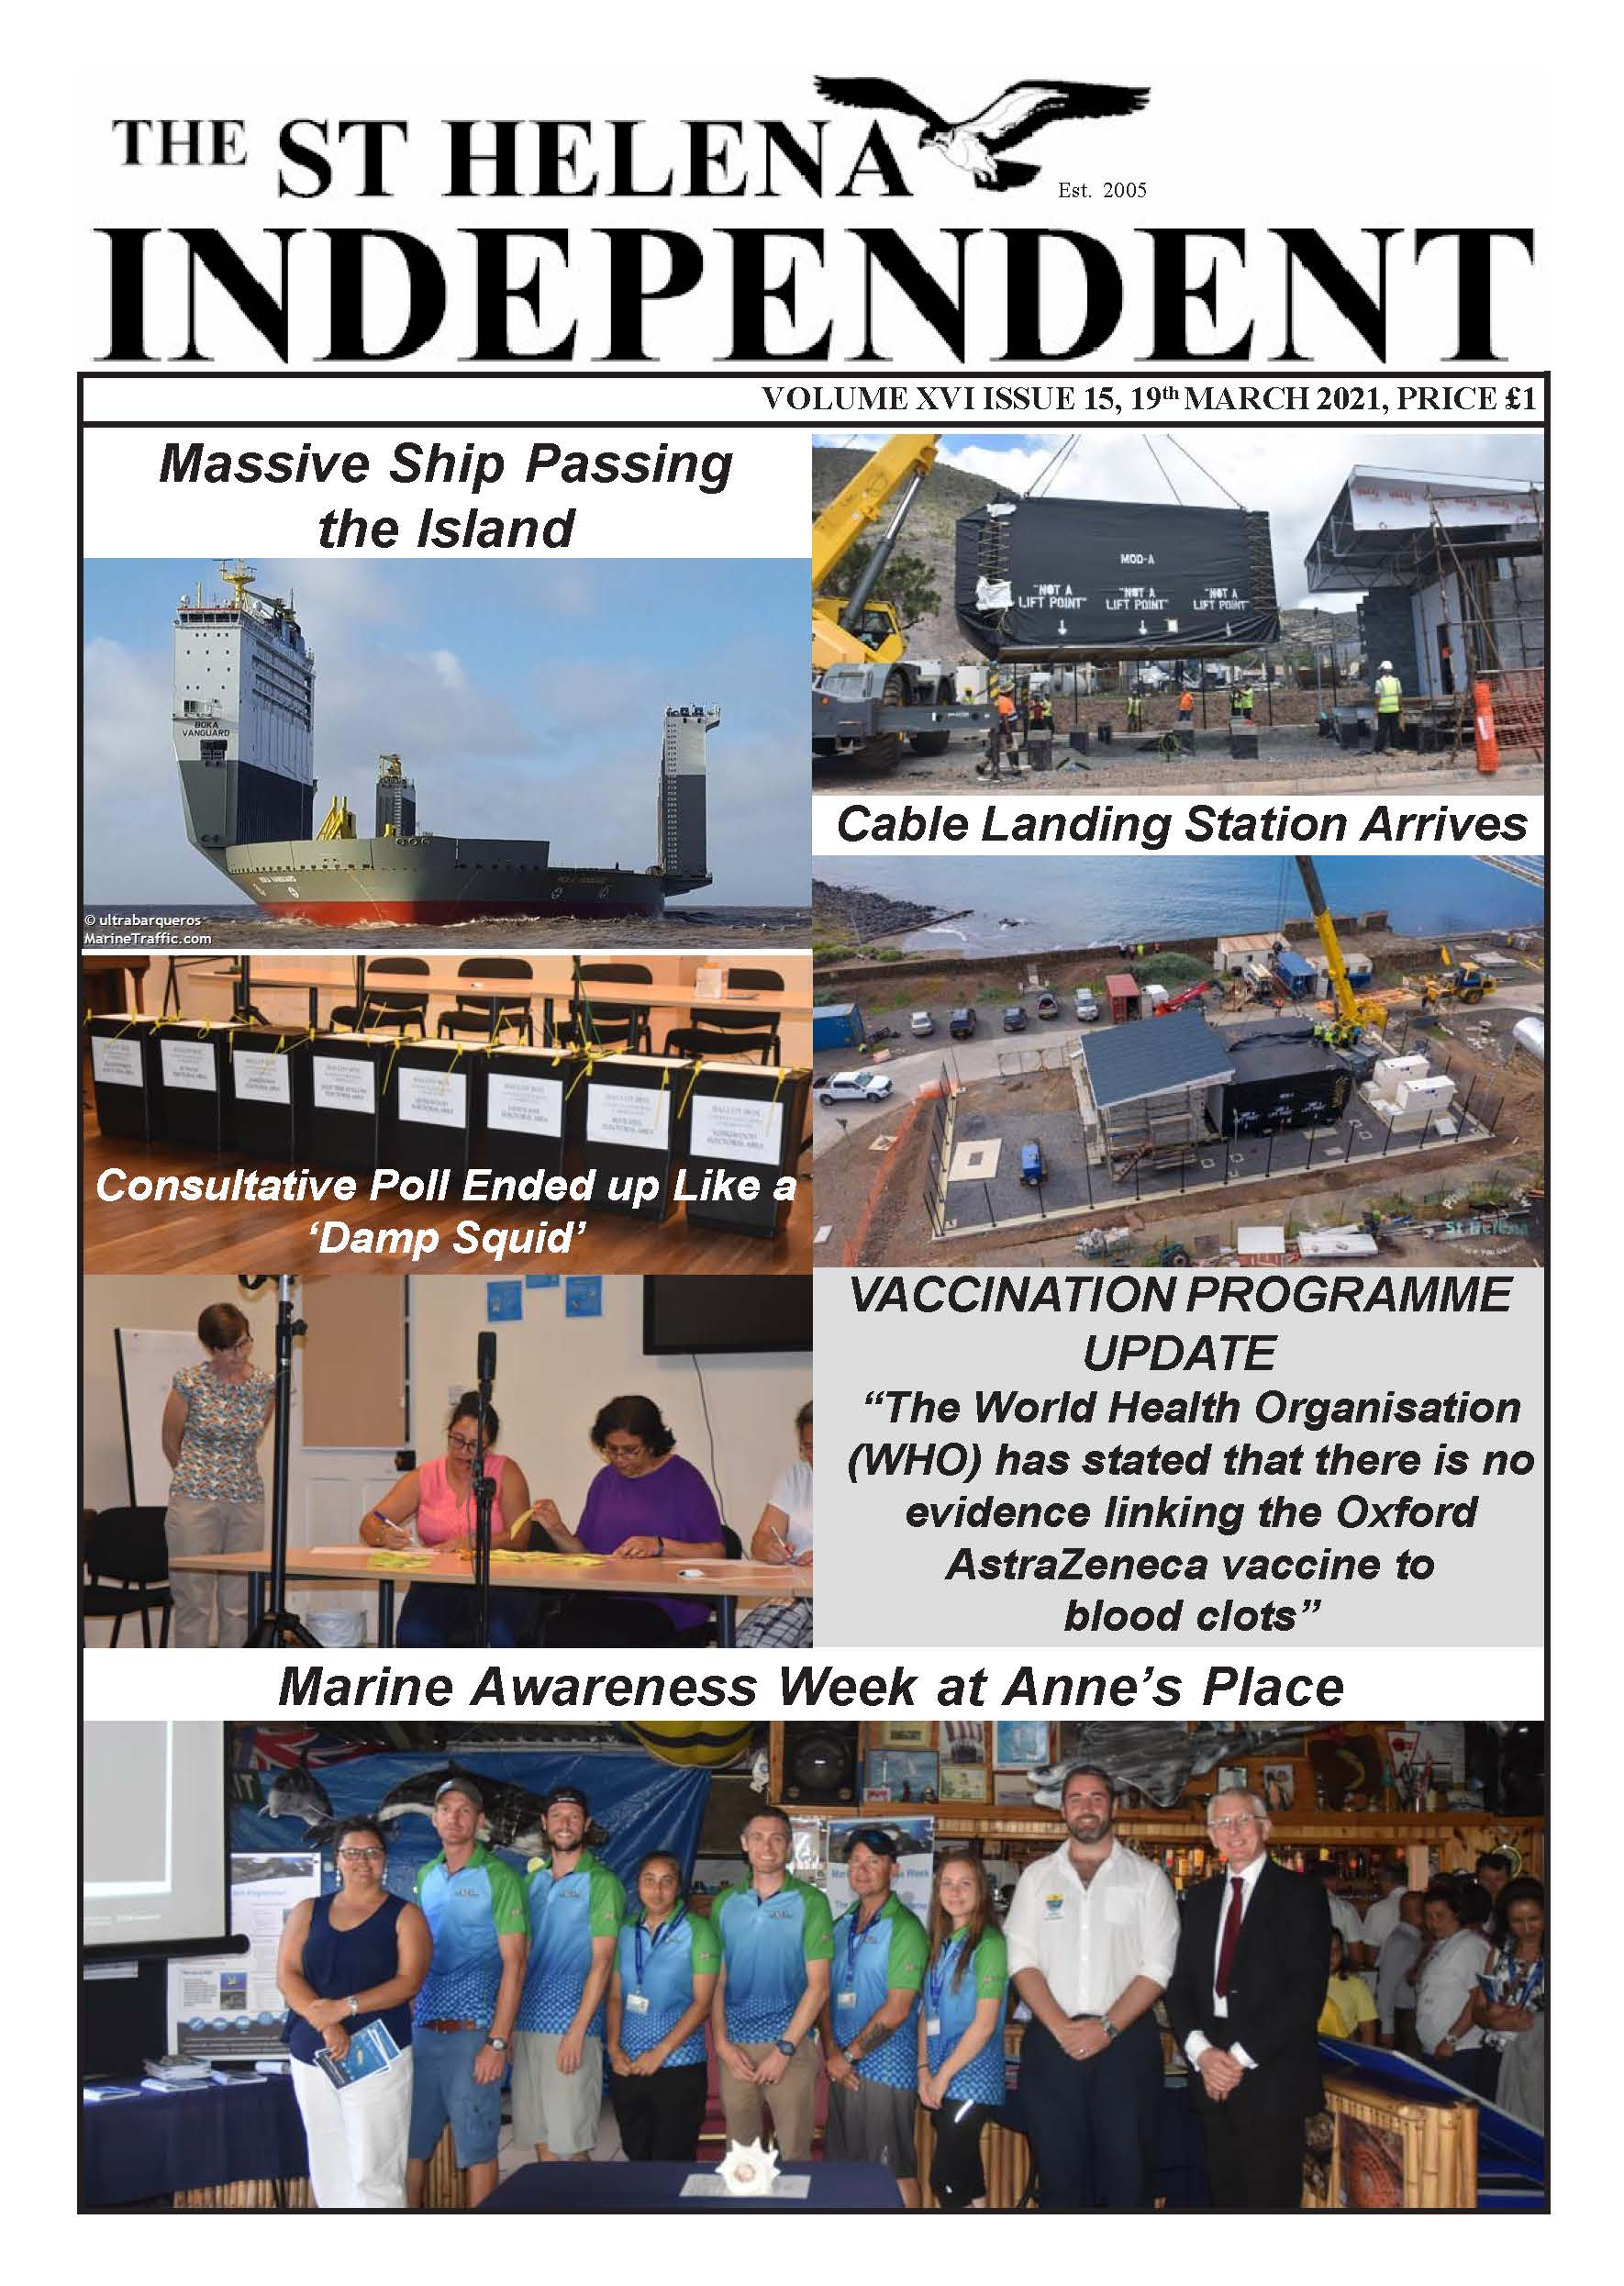 St Helena Independent 20210319 page 1